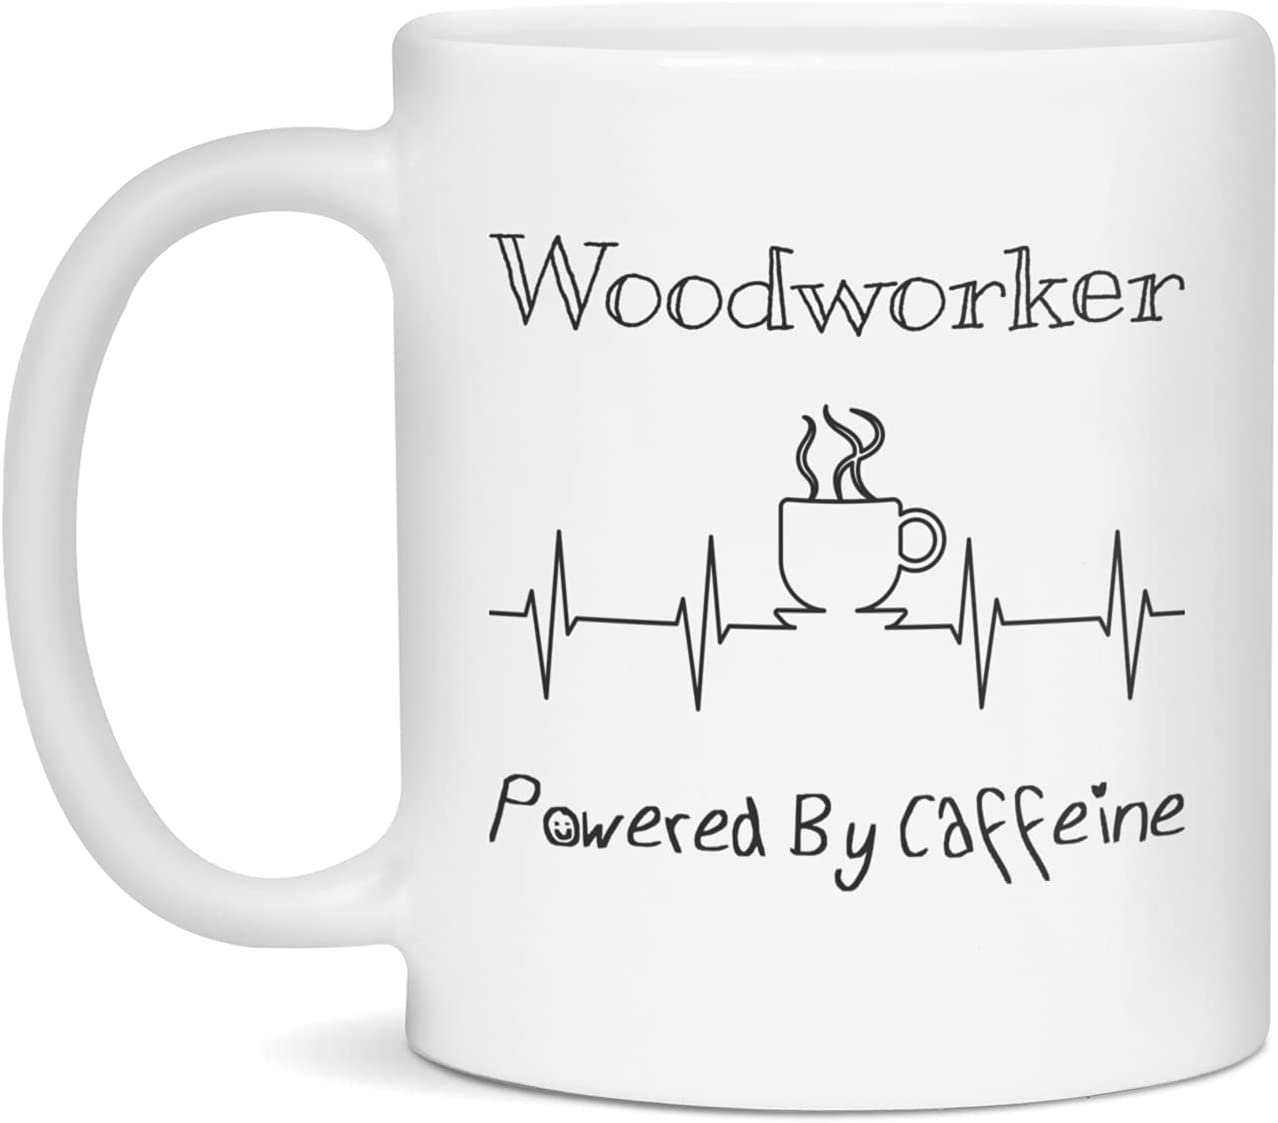 Woodworker Powered By Caffeine Funny Coffee EKG Lover ECG San Diego Mall Gift All items in the store M